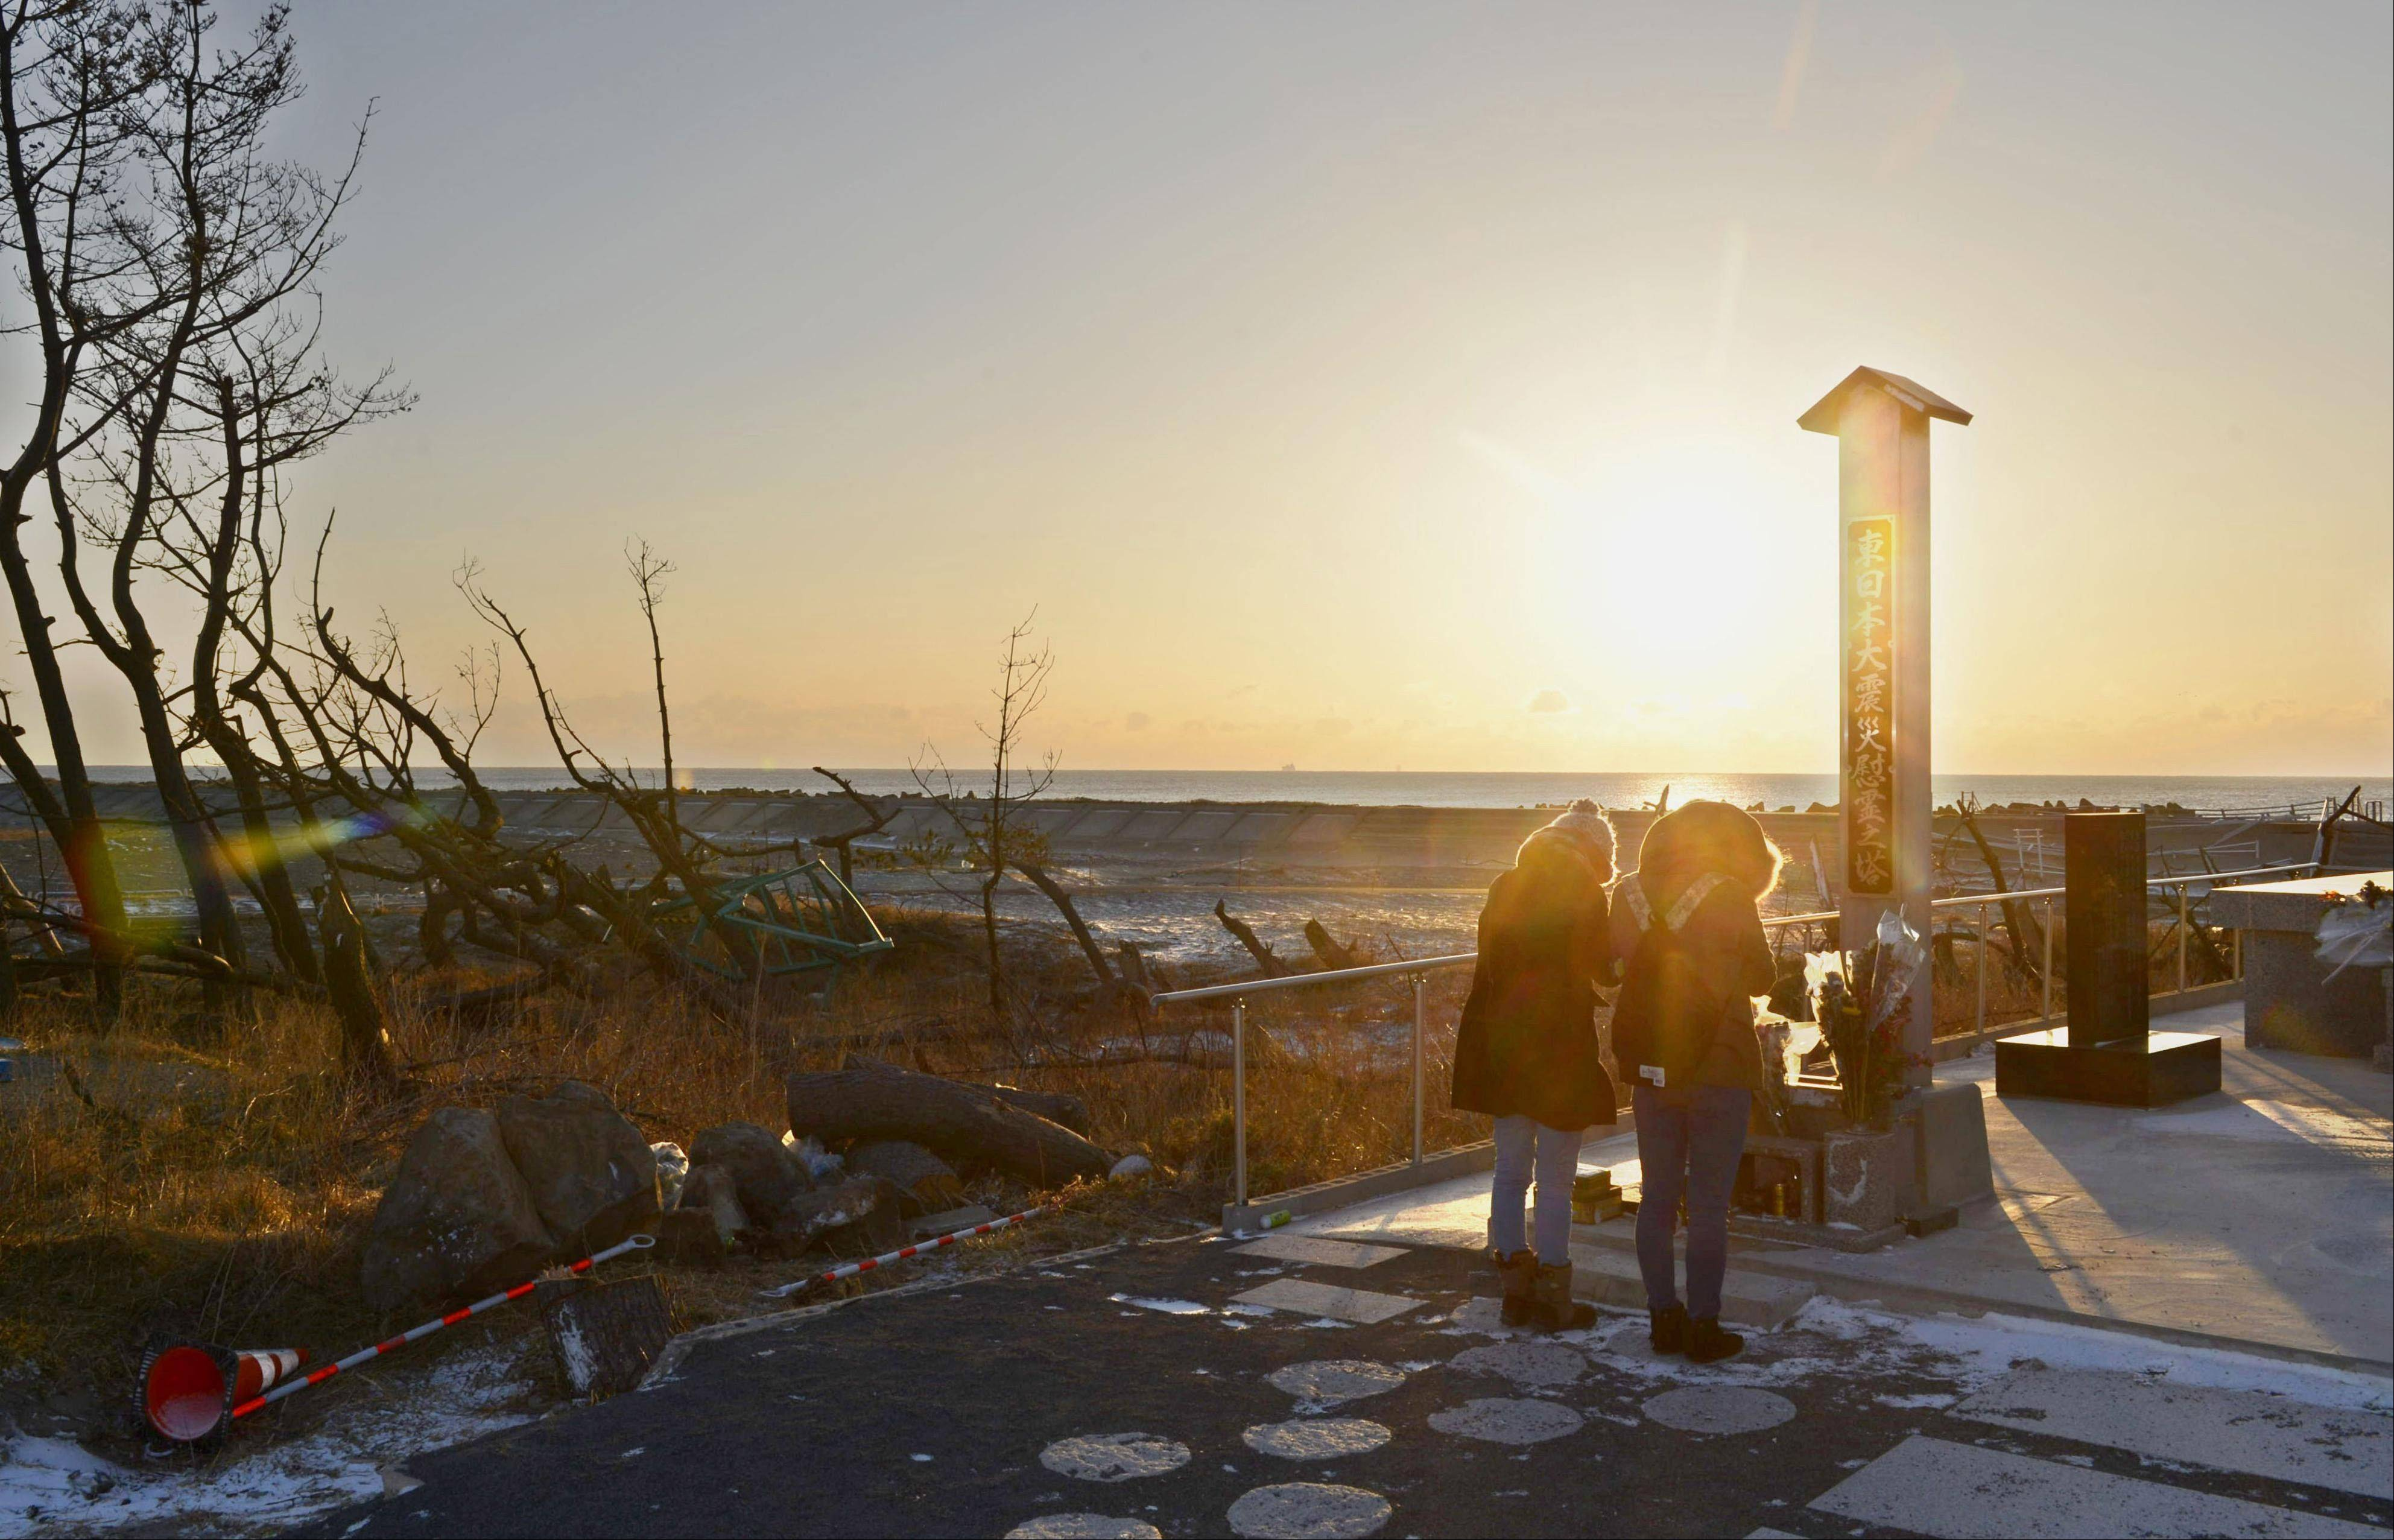 People offer prayers in front of a memorial cenotaph for tsunami victims on a beach in Arahama in Sendai, Miyagi Prefecture, Japan, Monday morning, March 11, 2013. Japan marked the second anniversary of its earthquake, tsunami and nuclear catastrophe, that killed nearly 19, 000 people in areas along Japan's northeastern coast.